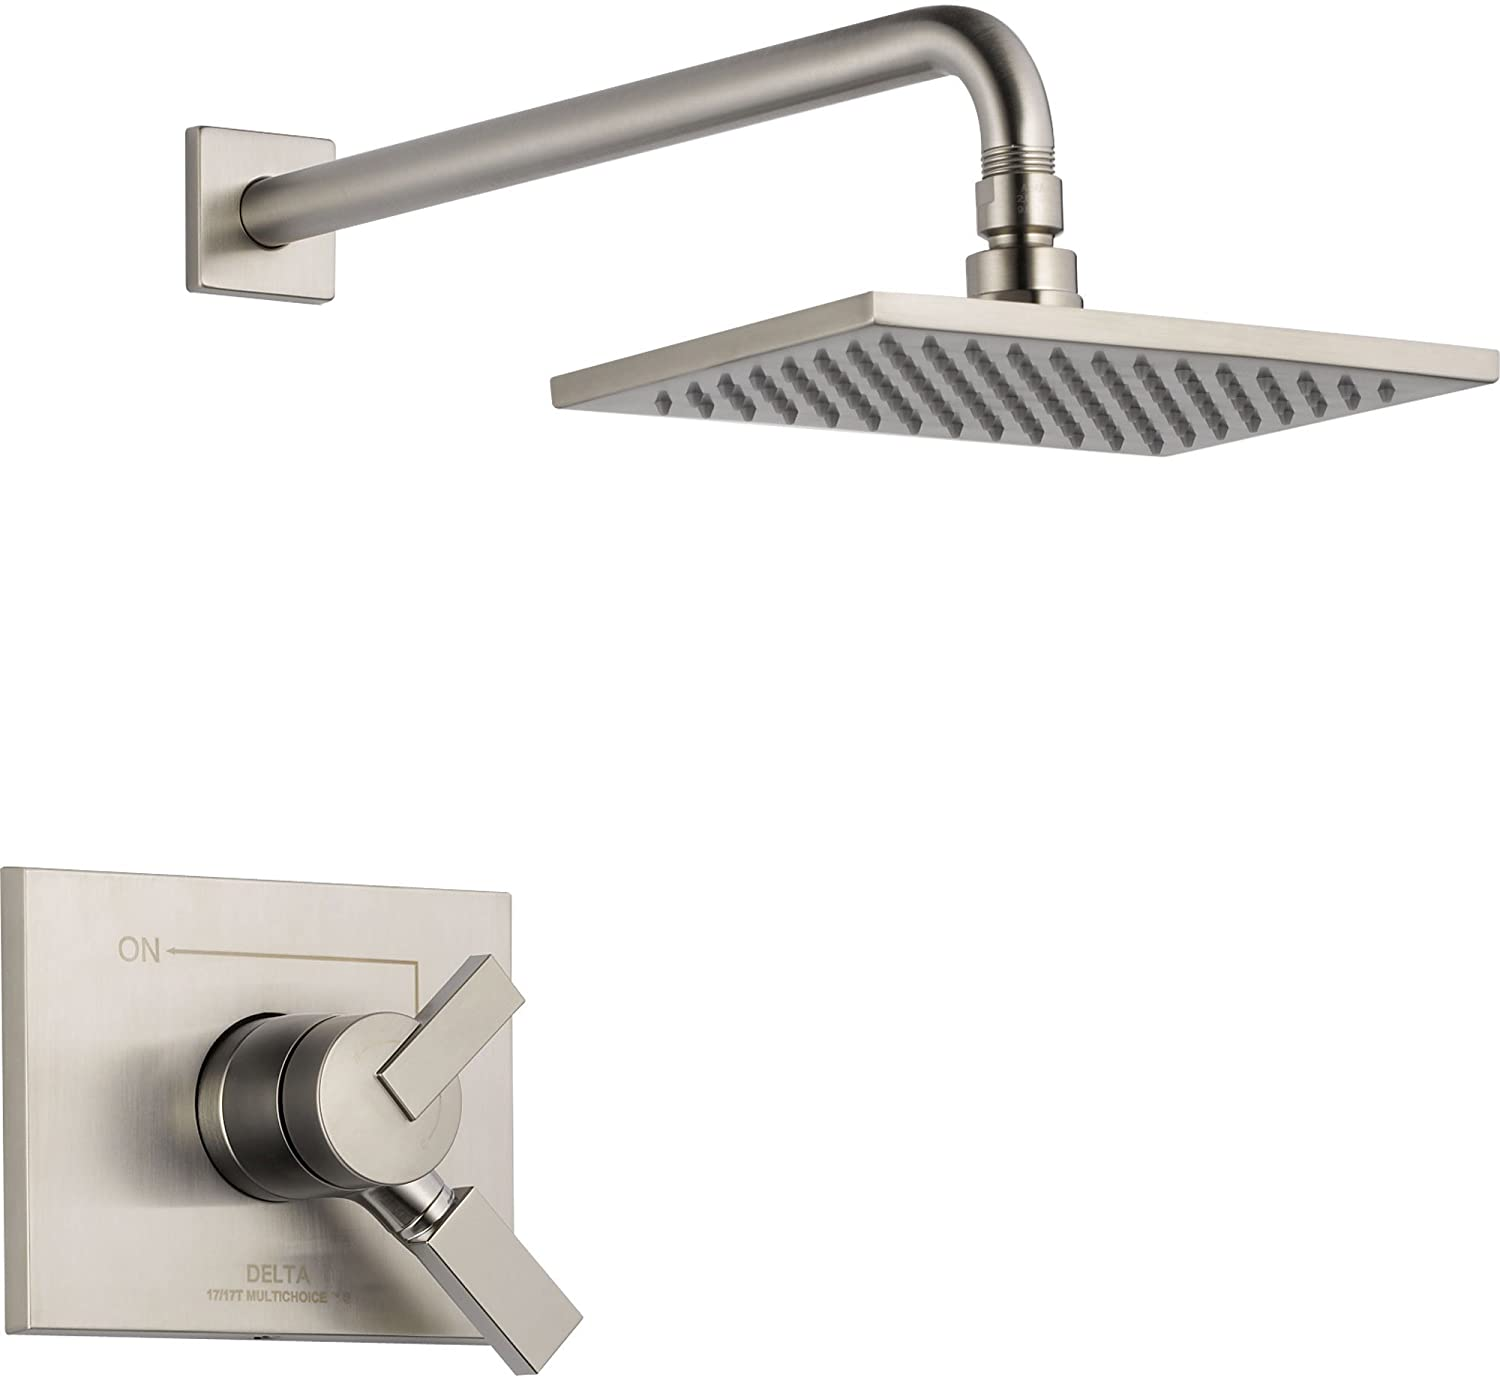 Delta Vero Stainless Steel Finish Temp/Volume Control Shower with Valve D757V